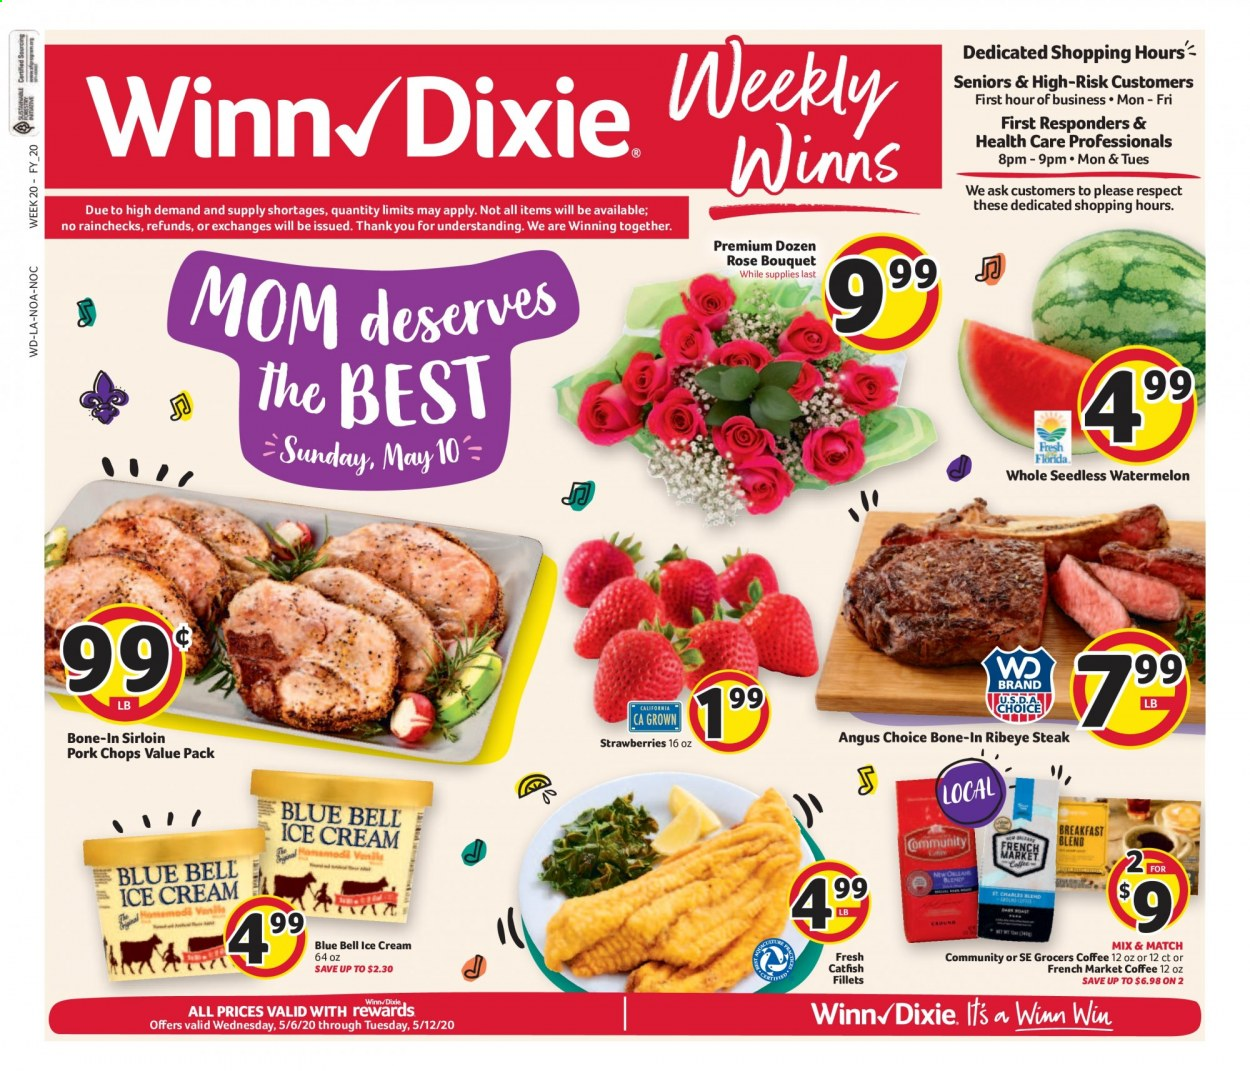 Winn Dixie Flyer - 05.06.2020 - 05.12.2020 - Sales products - strawberries, watermelon, steak, pork chops, pork meat, catfish, ice cream, coffee. Page 1.